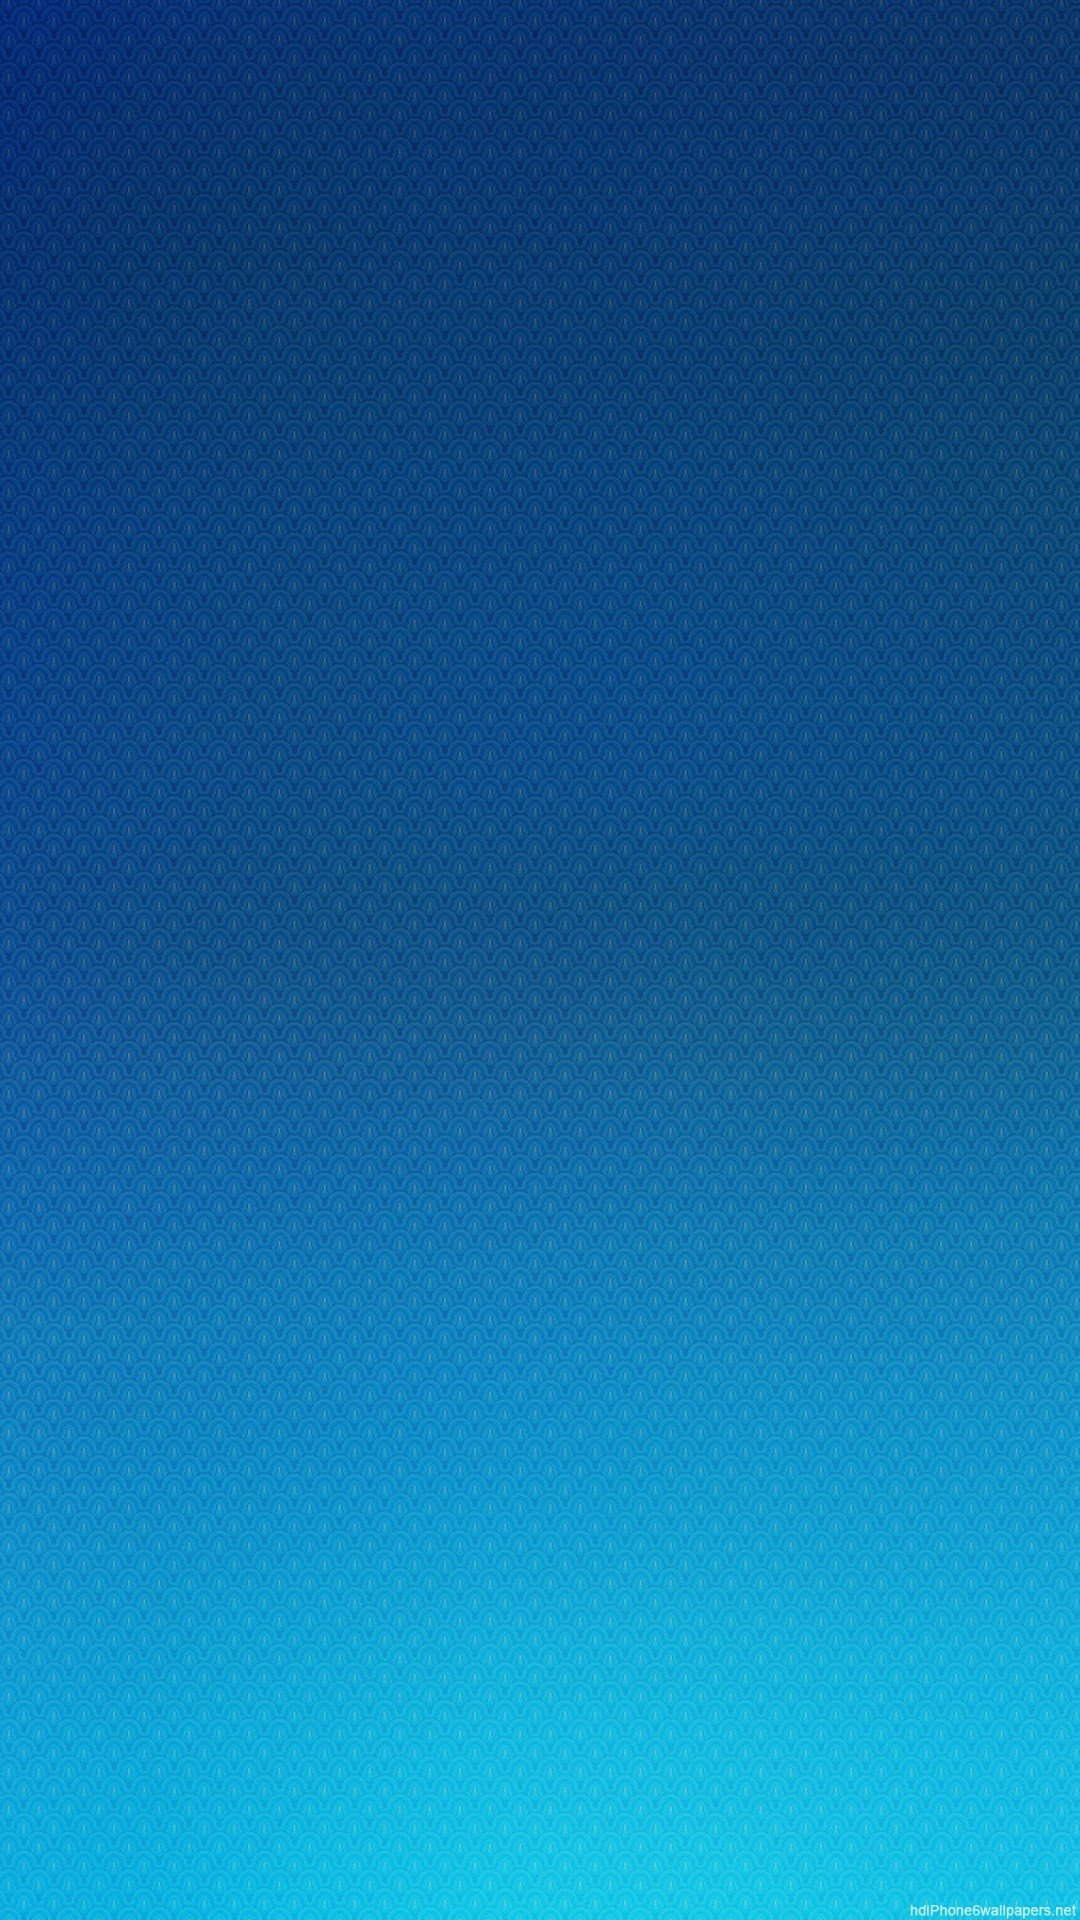 84 Blue Iphone Wallpapers on WallpaperPlay 1080x1920